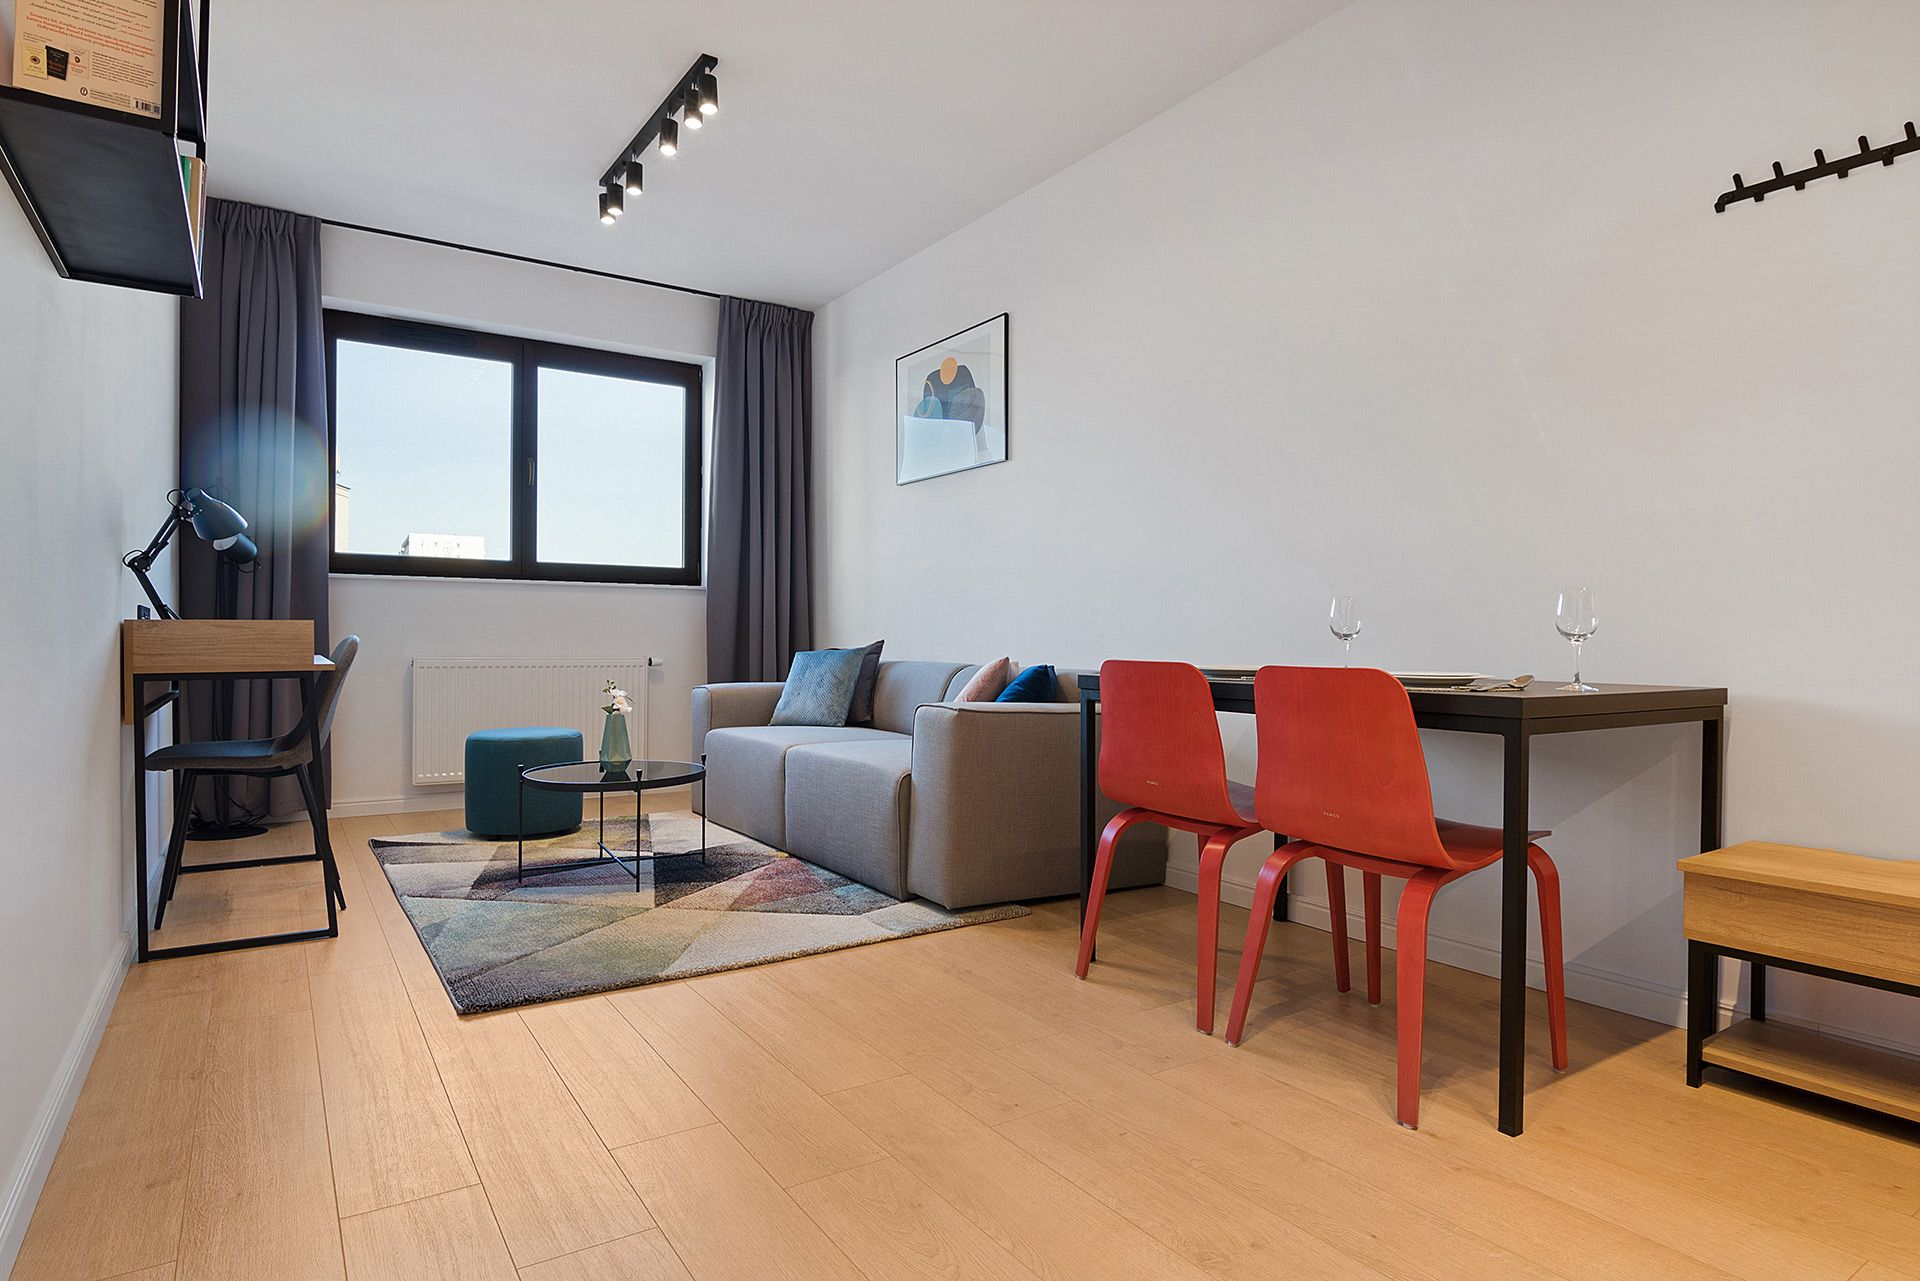 1 Bedroom - Medium apartment to rent in Warsaw UPR-A-056-2